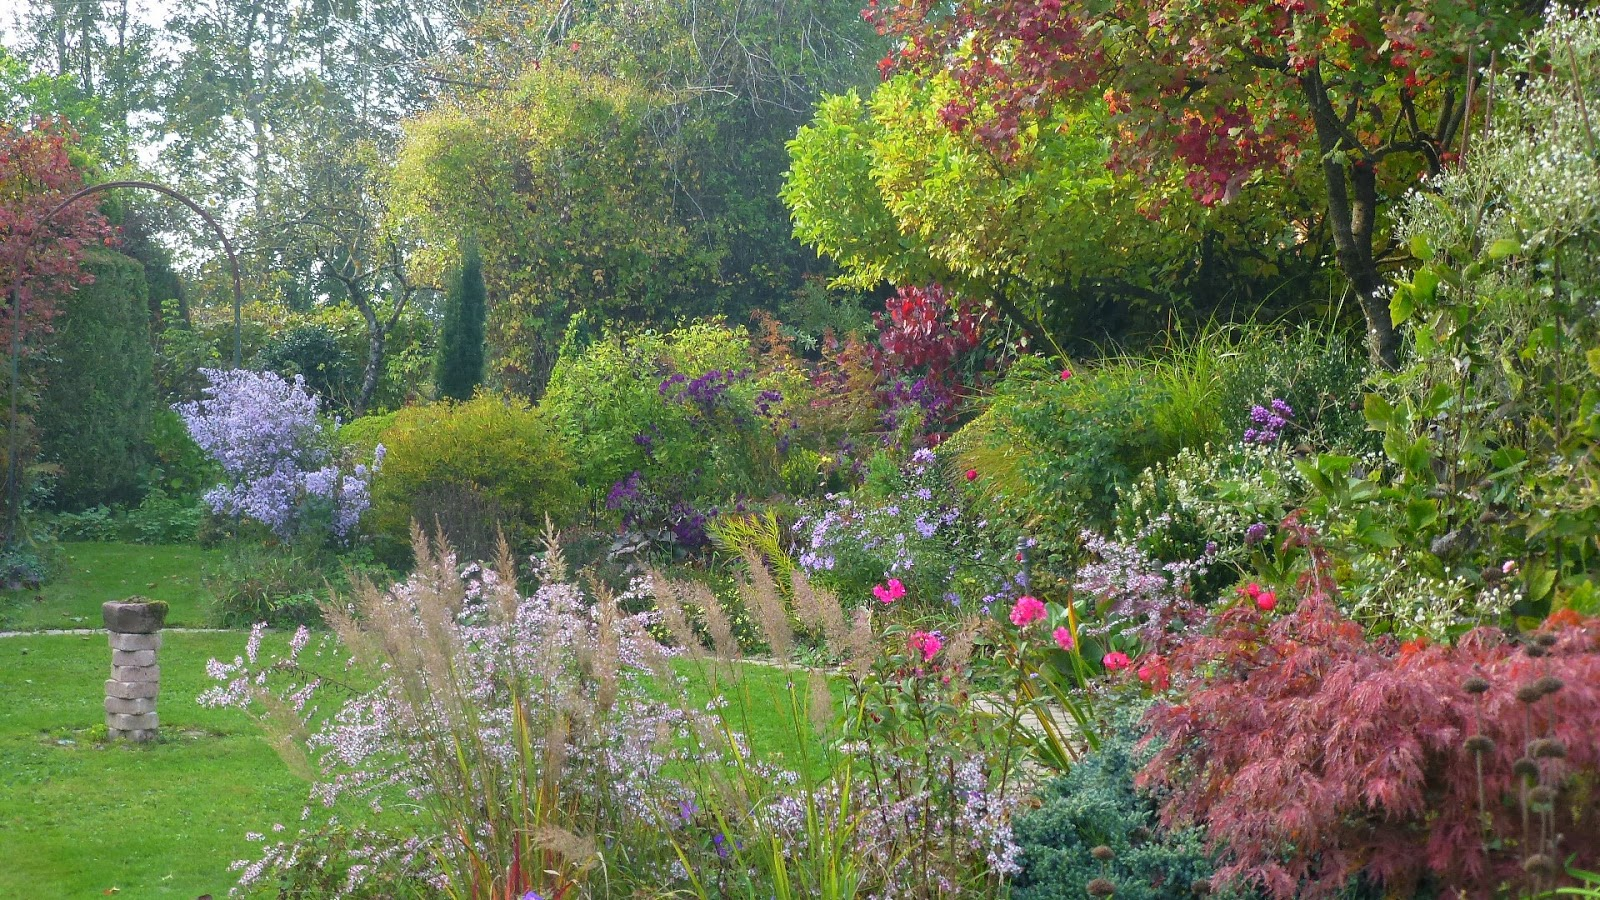 Le jardin de brigitte alsace d but octobre 1 for Jardin octobre